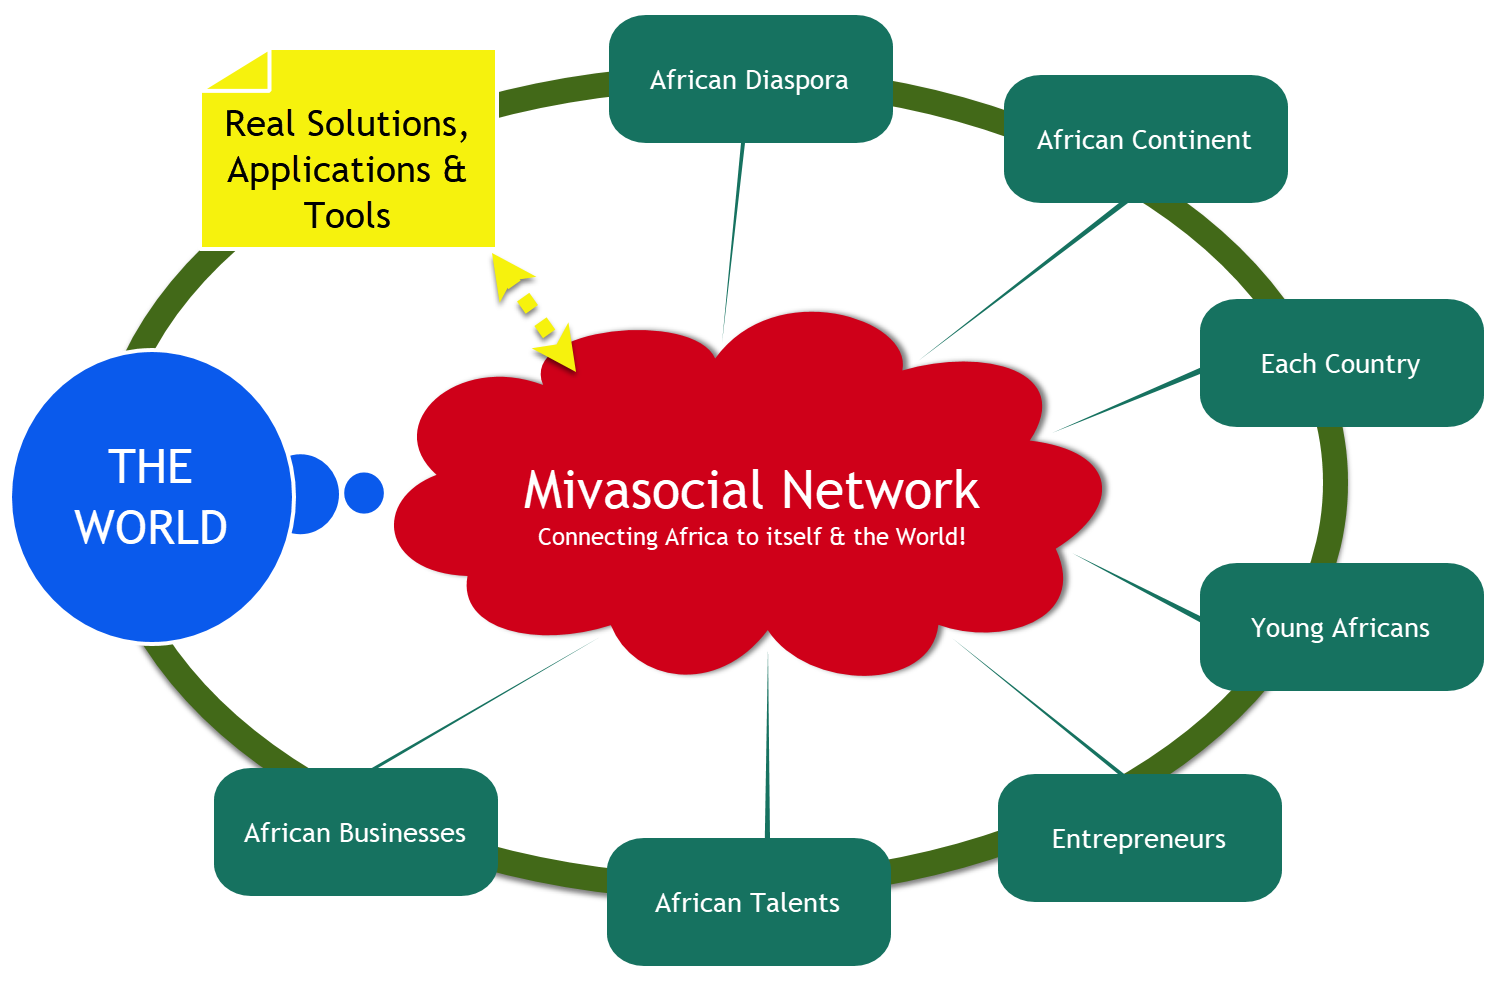 Image of the Mivasocial Platform and Social Network. Connection Afria to itself and the rest of the world